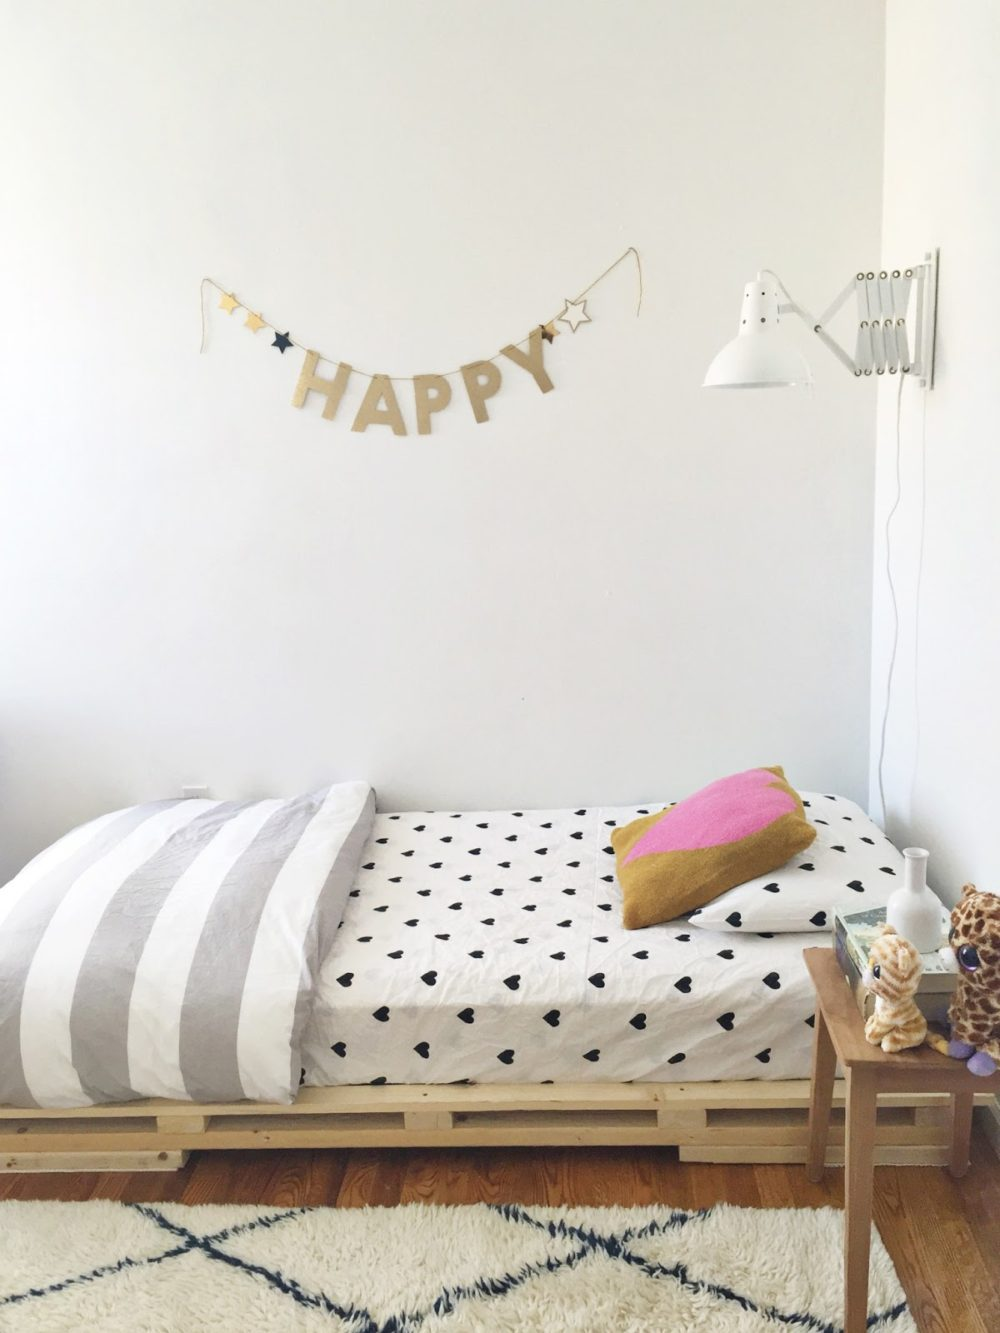 shared_rooms_simplydanishliving-com_01